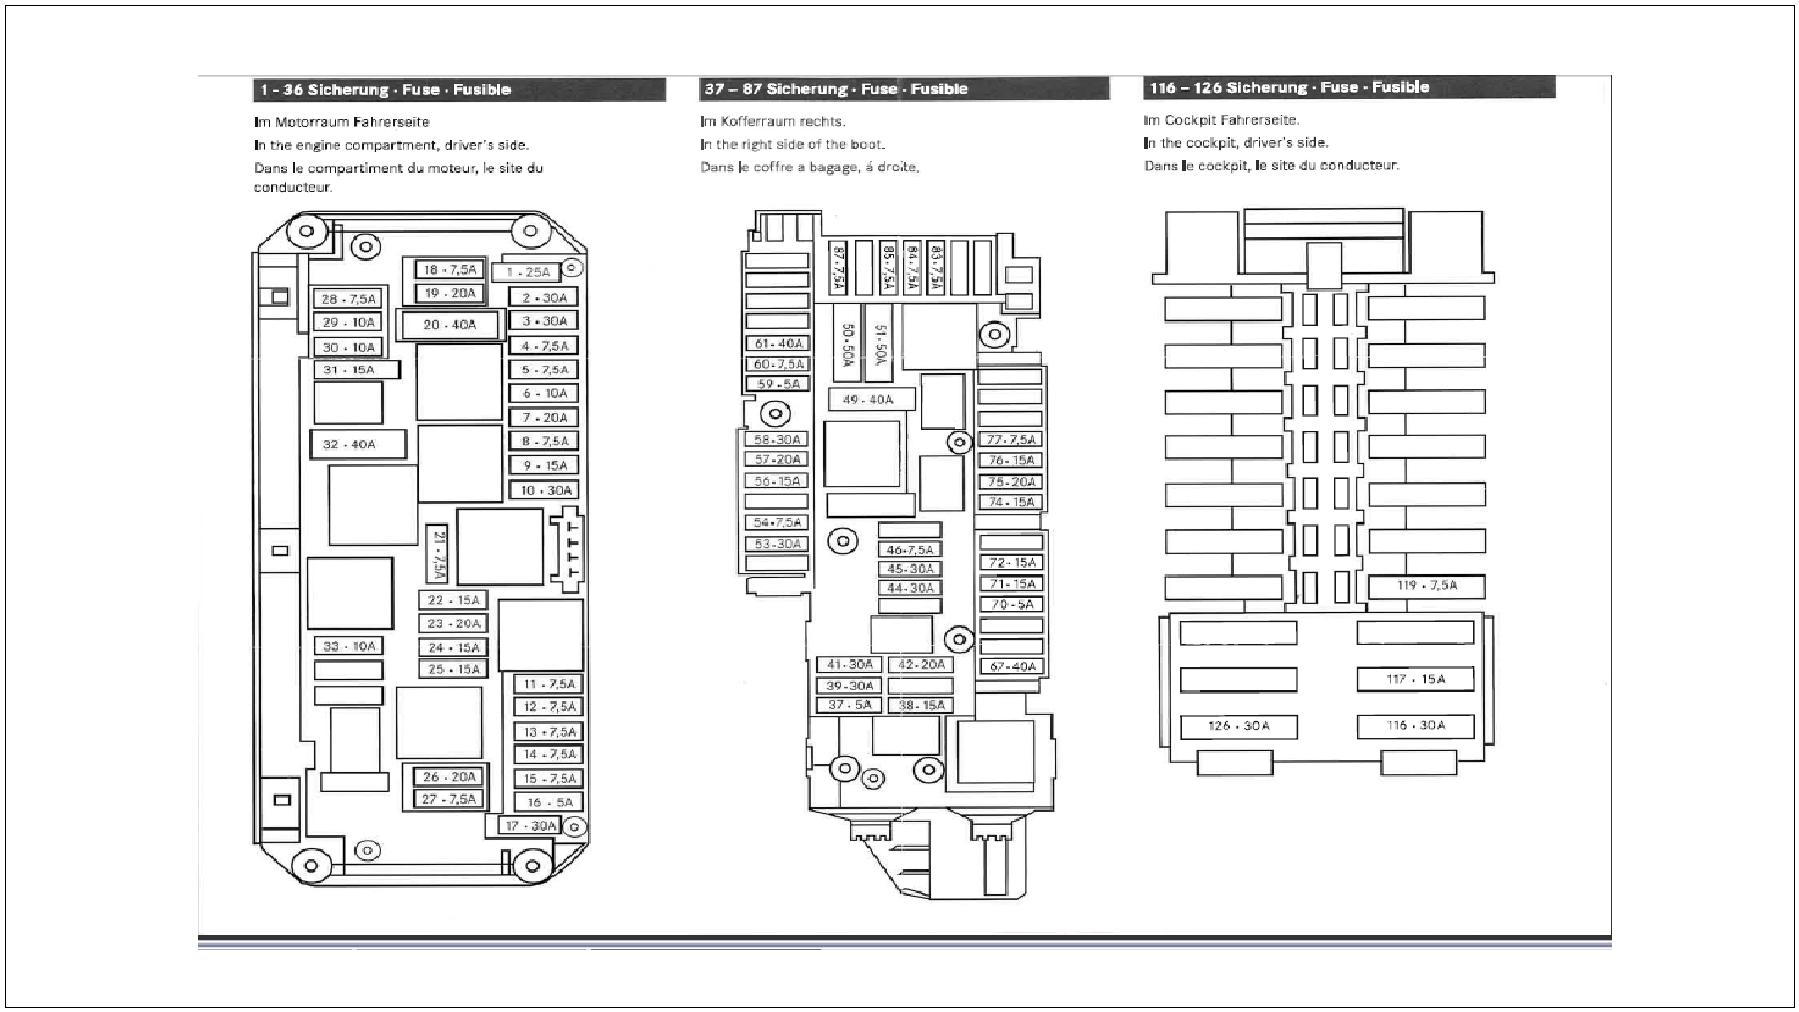 2008 Mercedes C300 Fuse Diagram